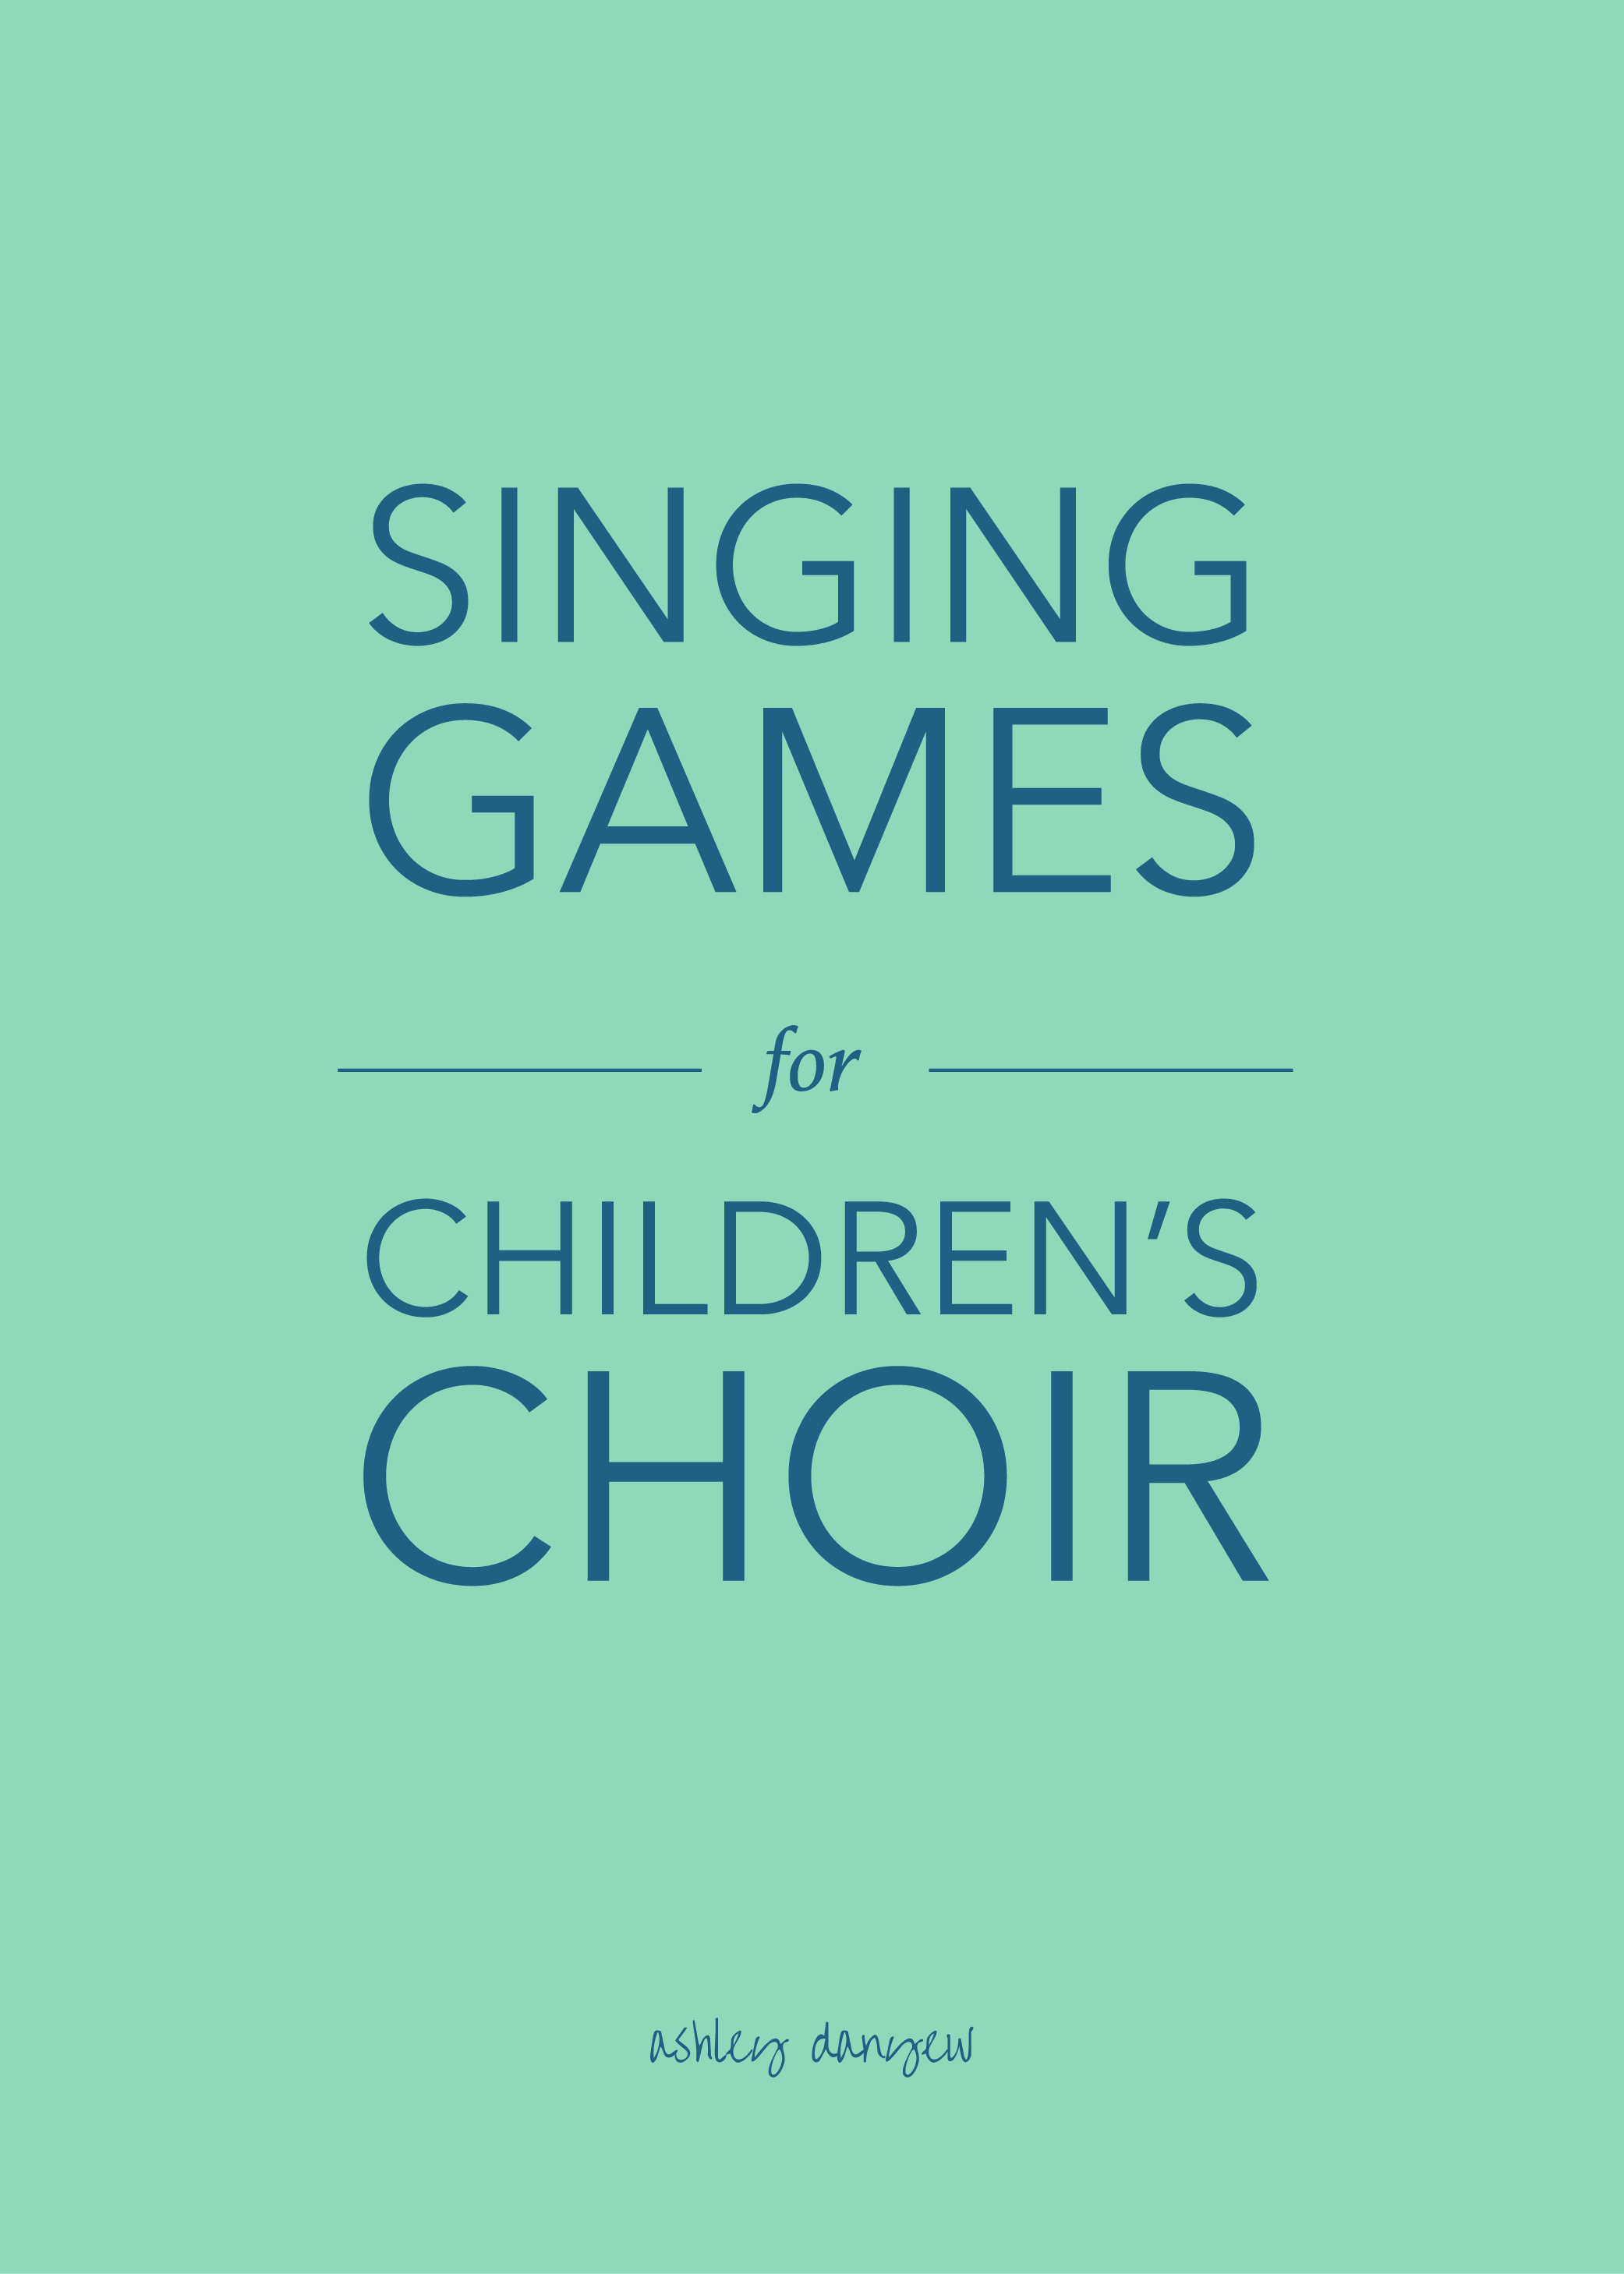 Copy of Singing Games for Children's Choir